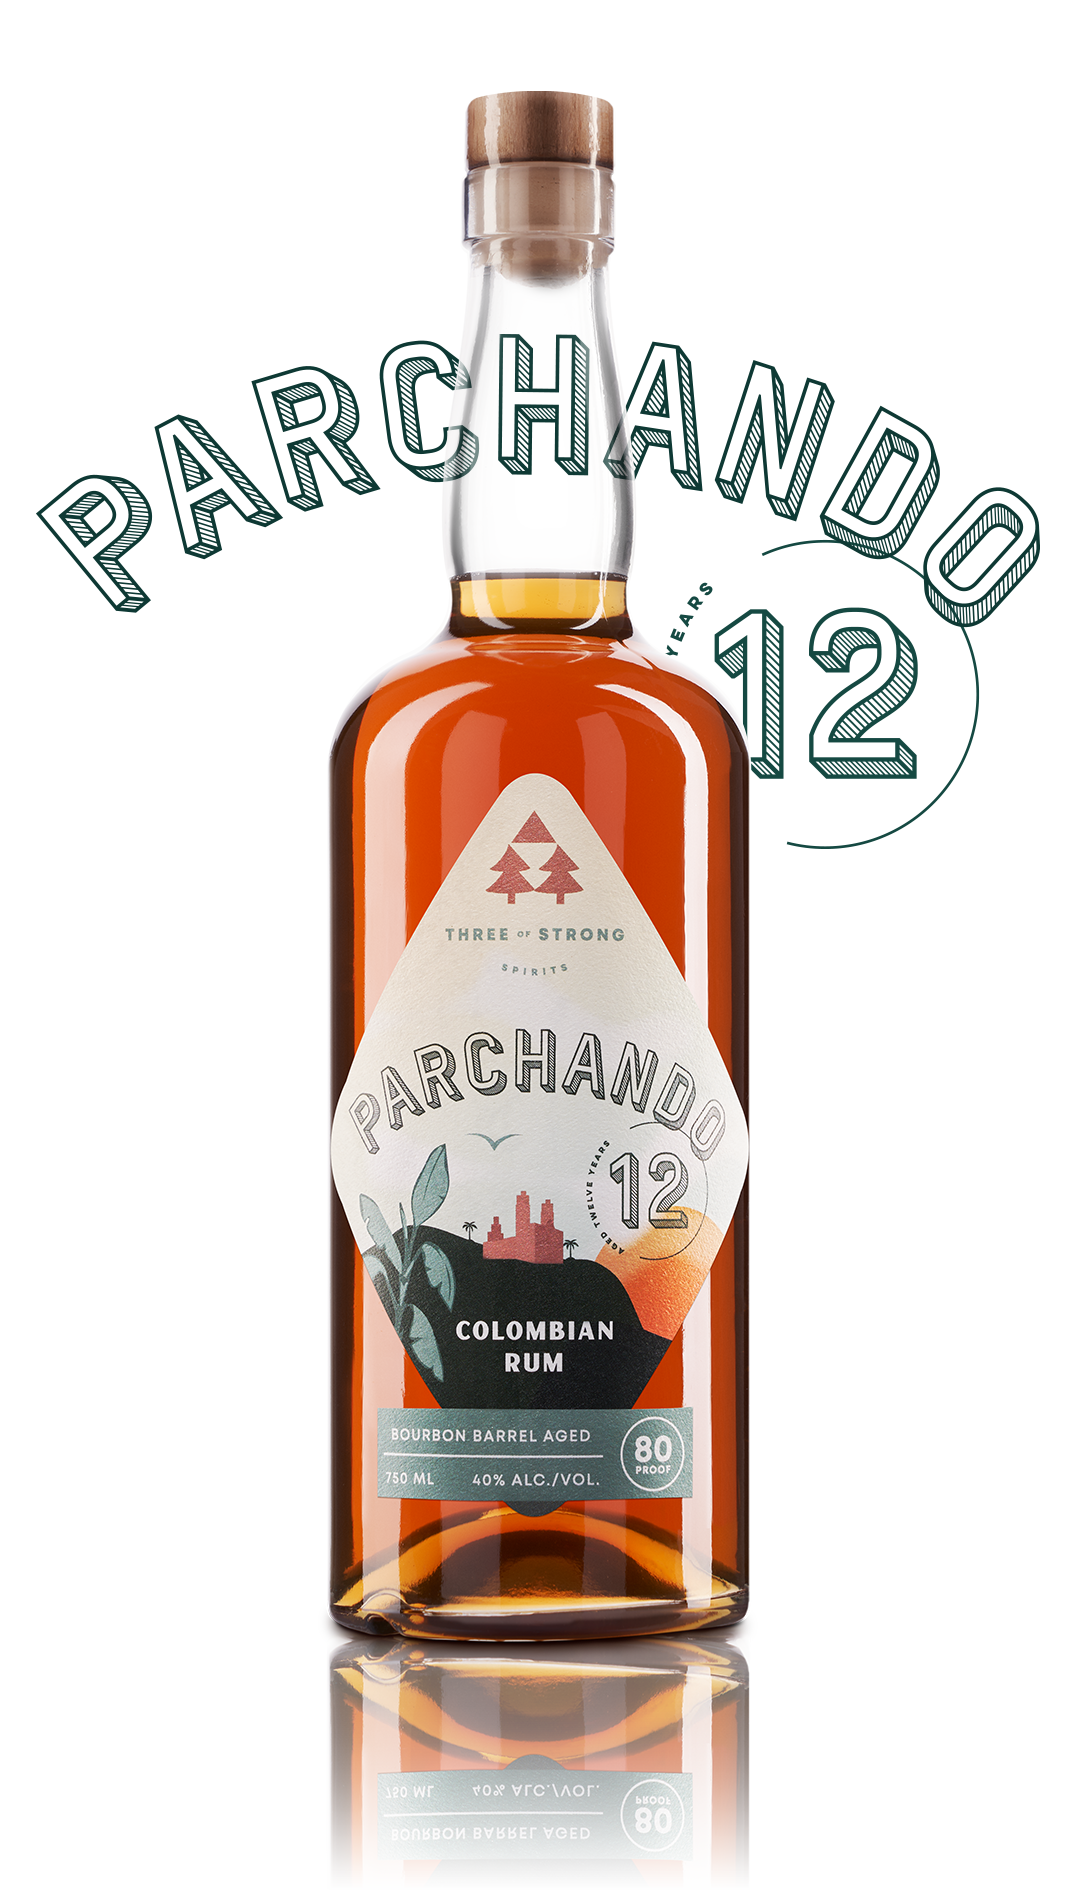 three of strong spirits, parchando rum